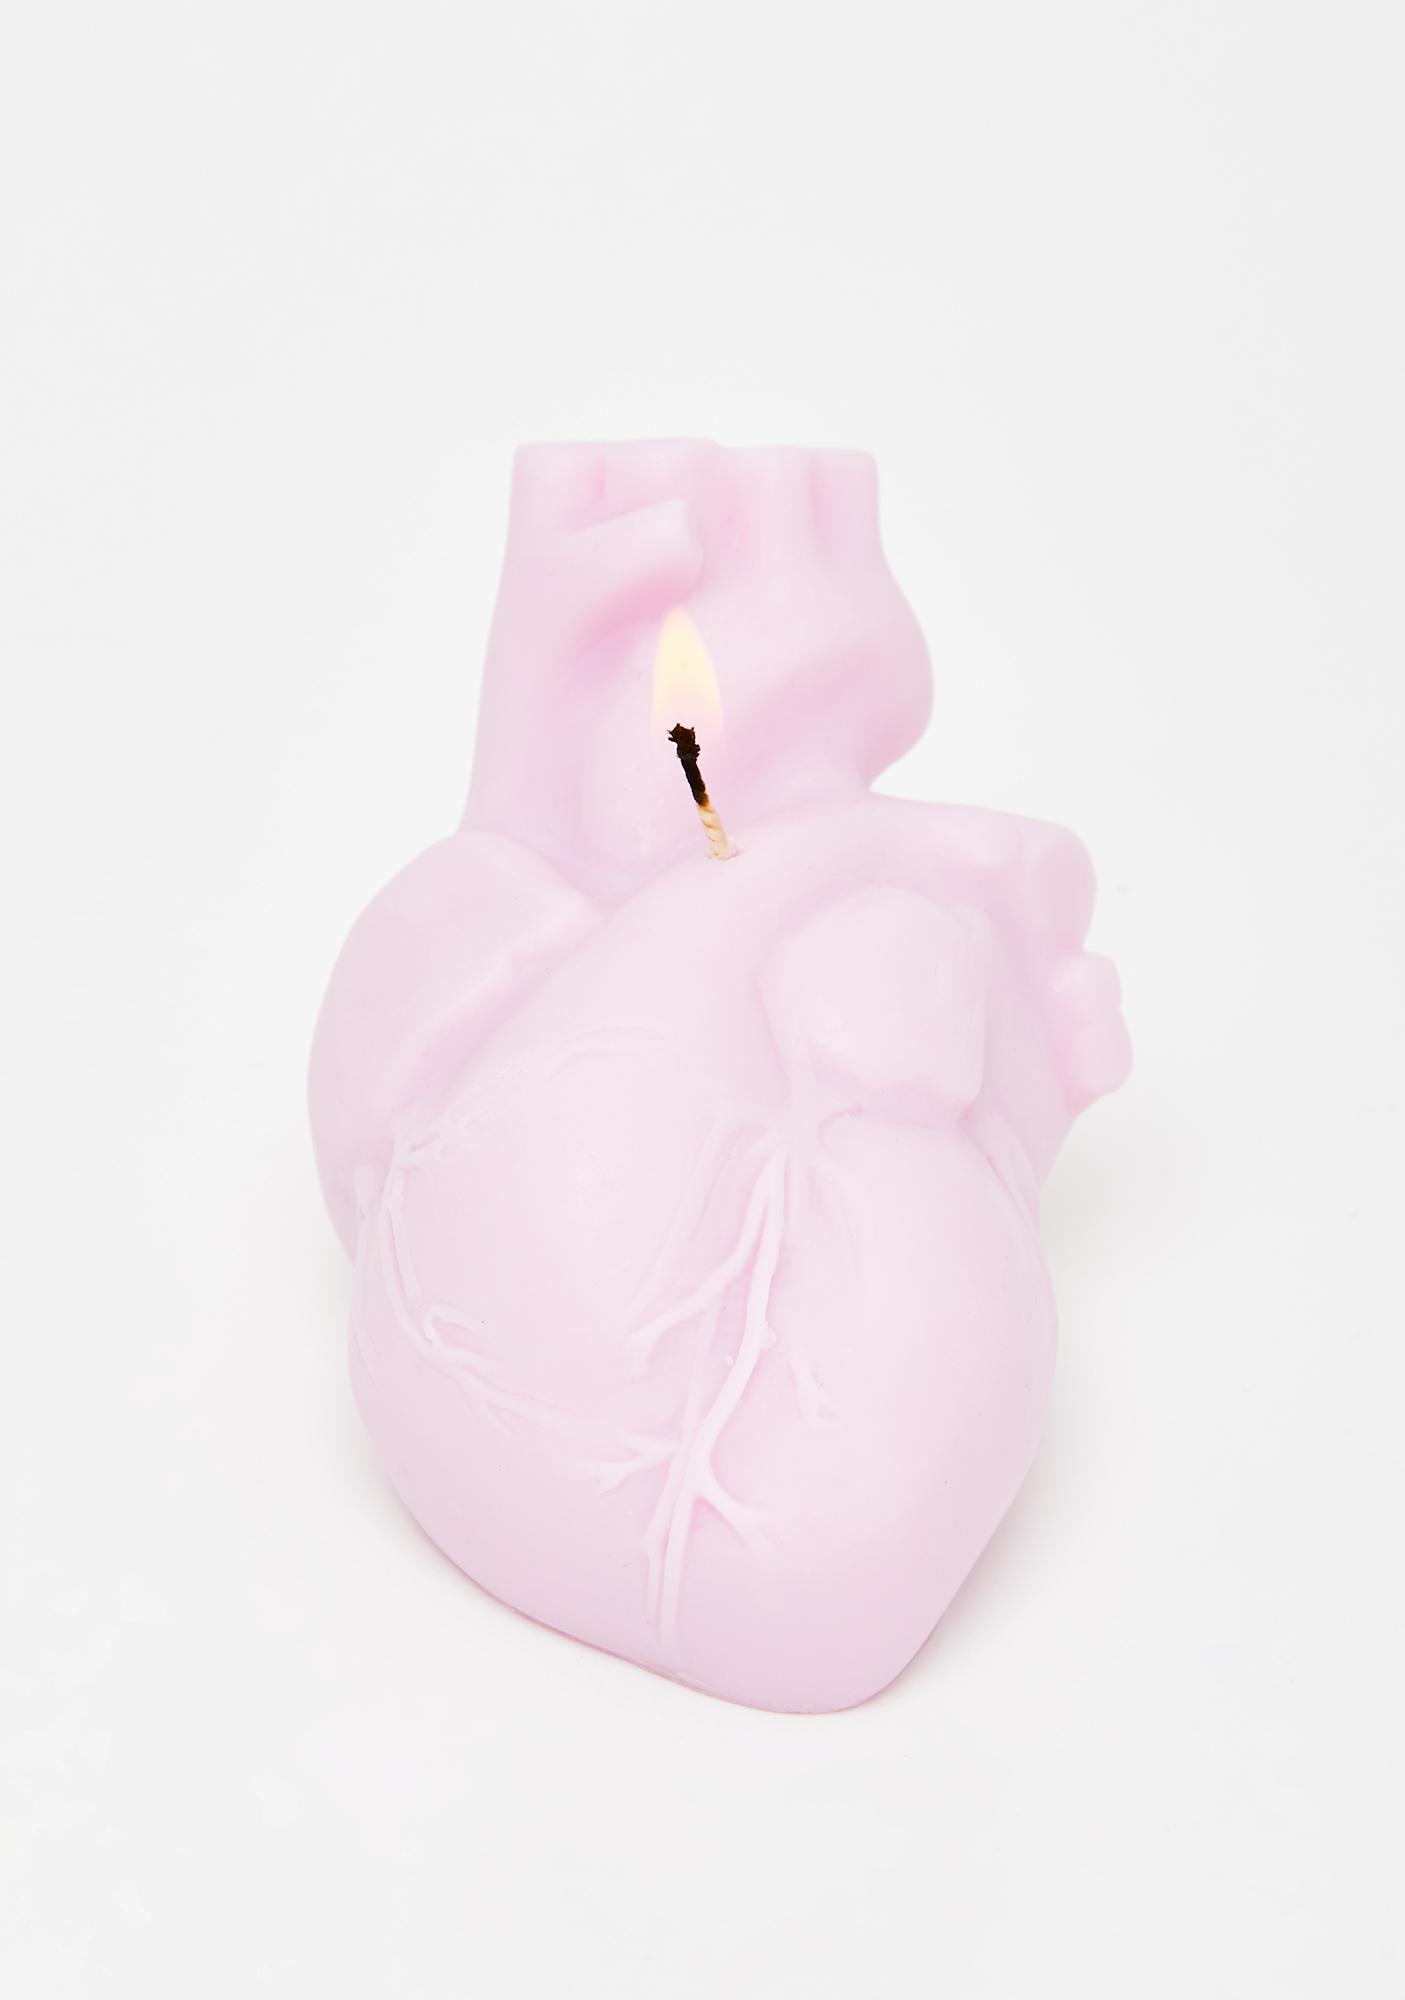 The Blackened Teeth Anatomical Heart Scented Candle